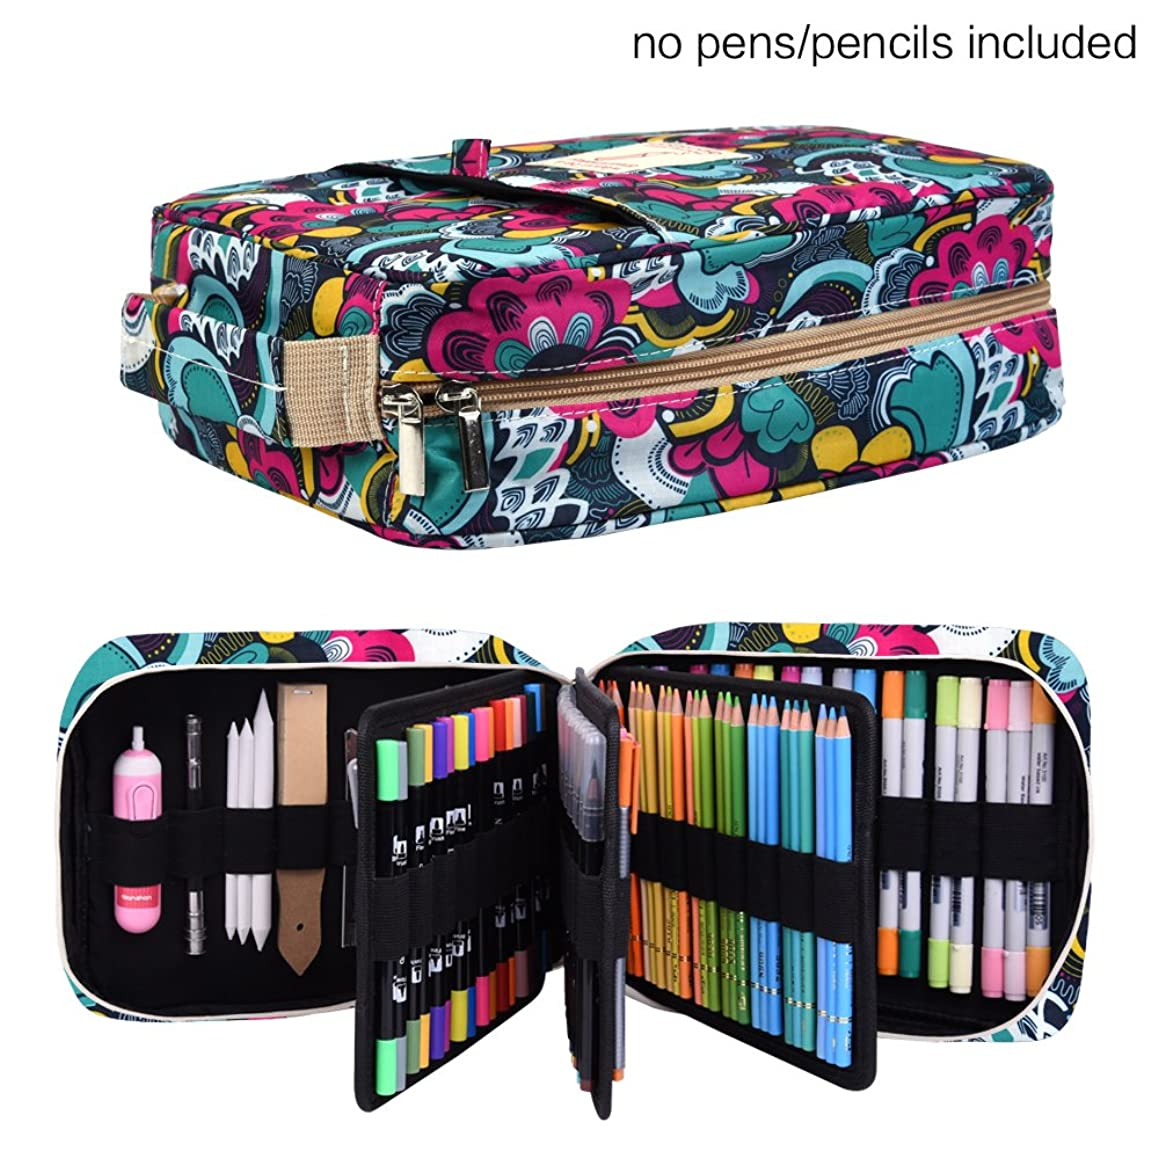 Pencil Case Holder Slot -?Holds 202 Colored Pencils or 136 Gel Pens with Zipper Closure - Large Capacity Pen Organizer for Watercolor Pens & Markers | Perfect Gift for Beginner & Artist Blossom